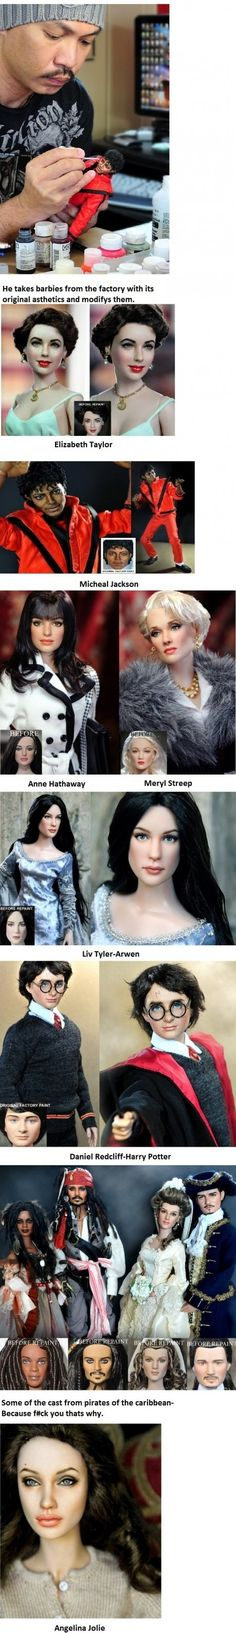 Repainted Barbie dolls... who knew they could be so life-like??